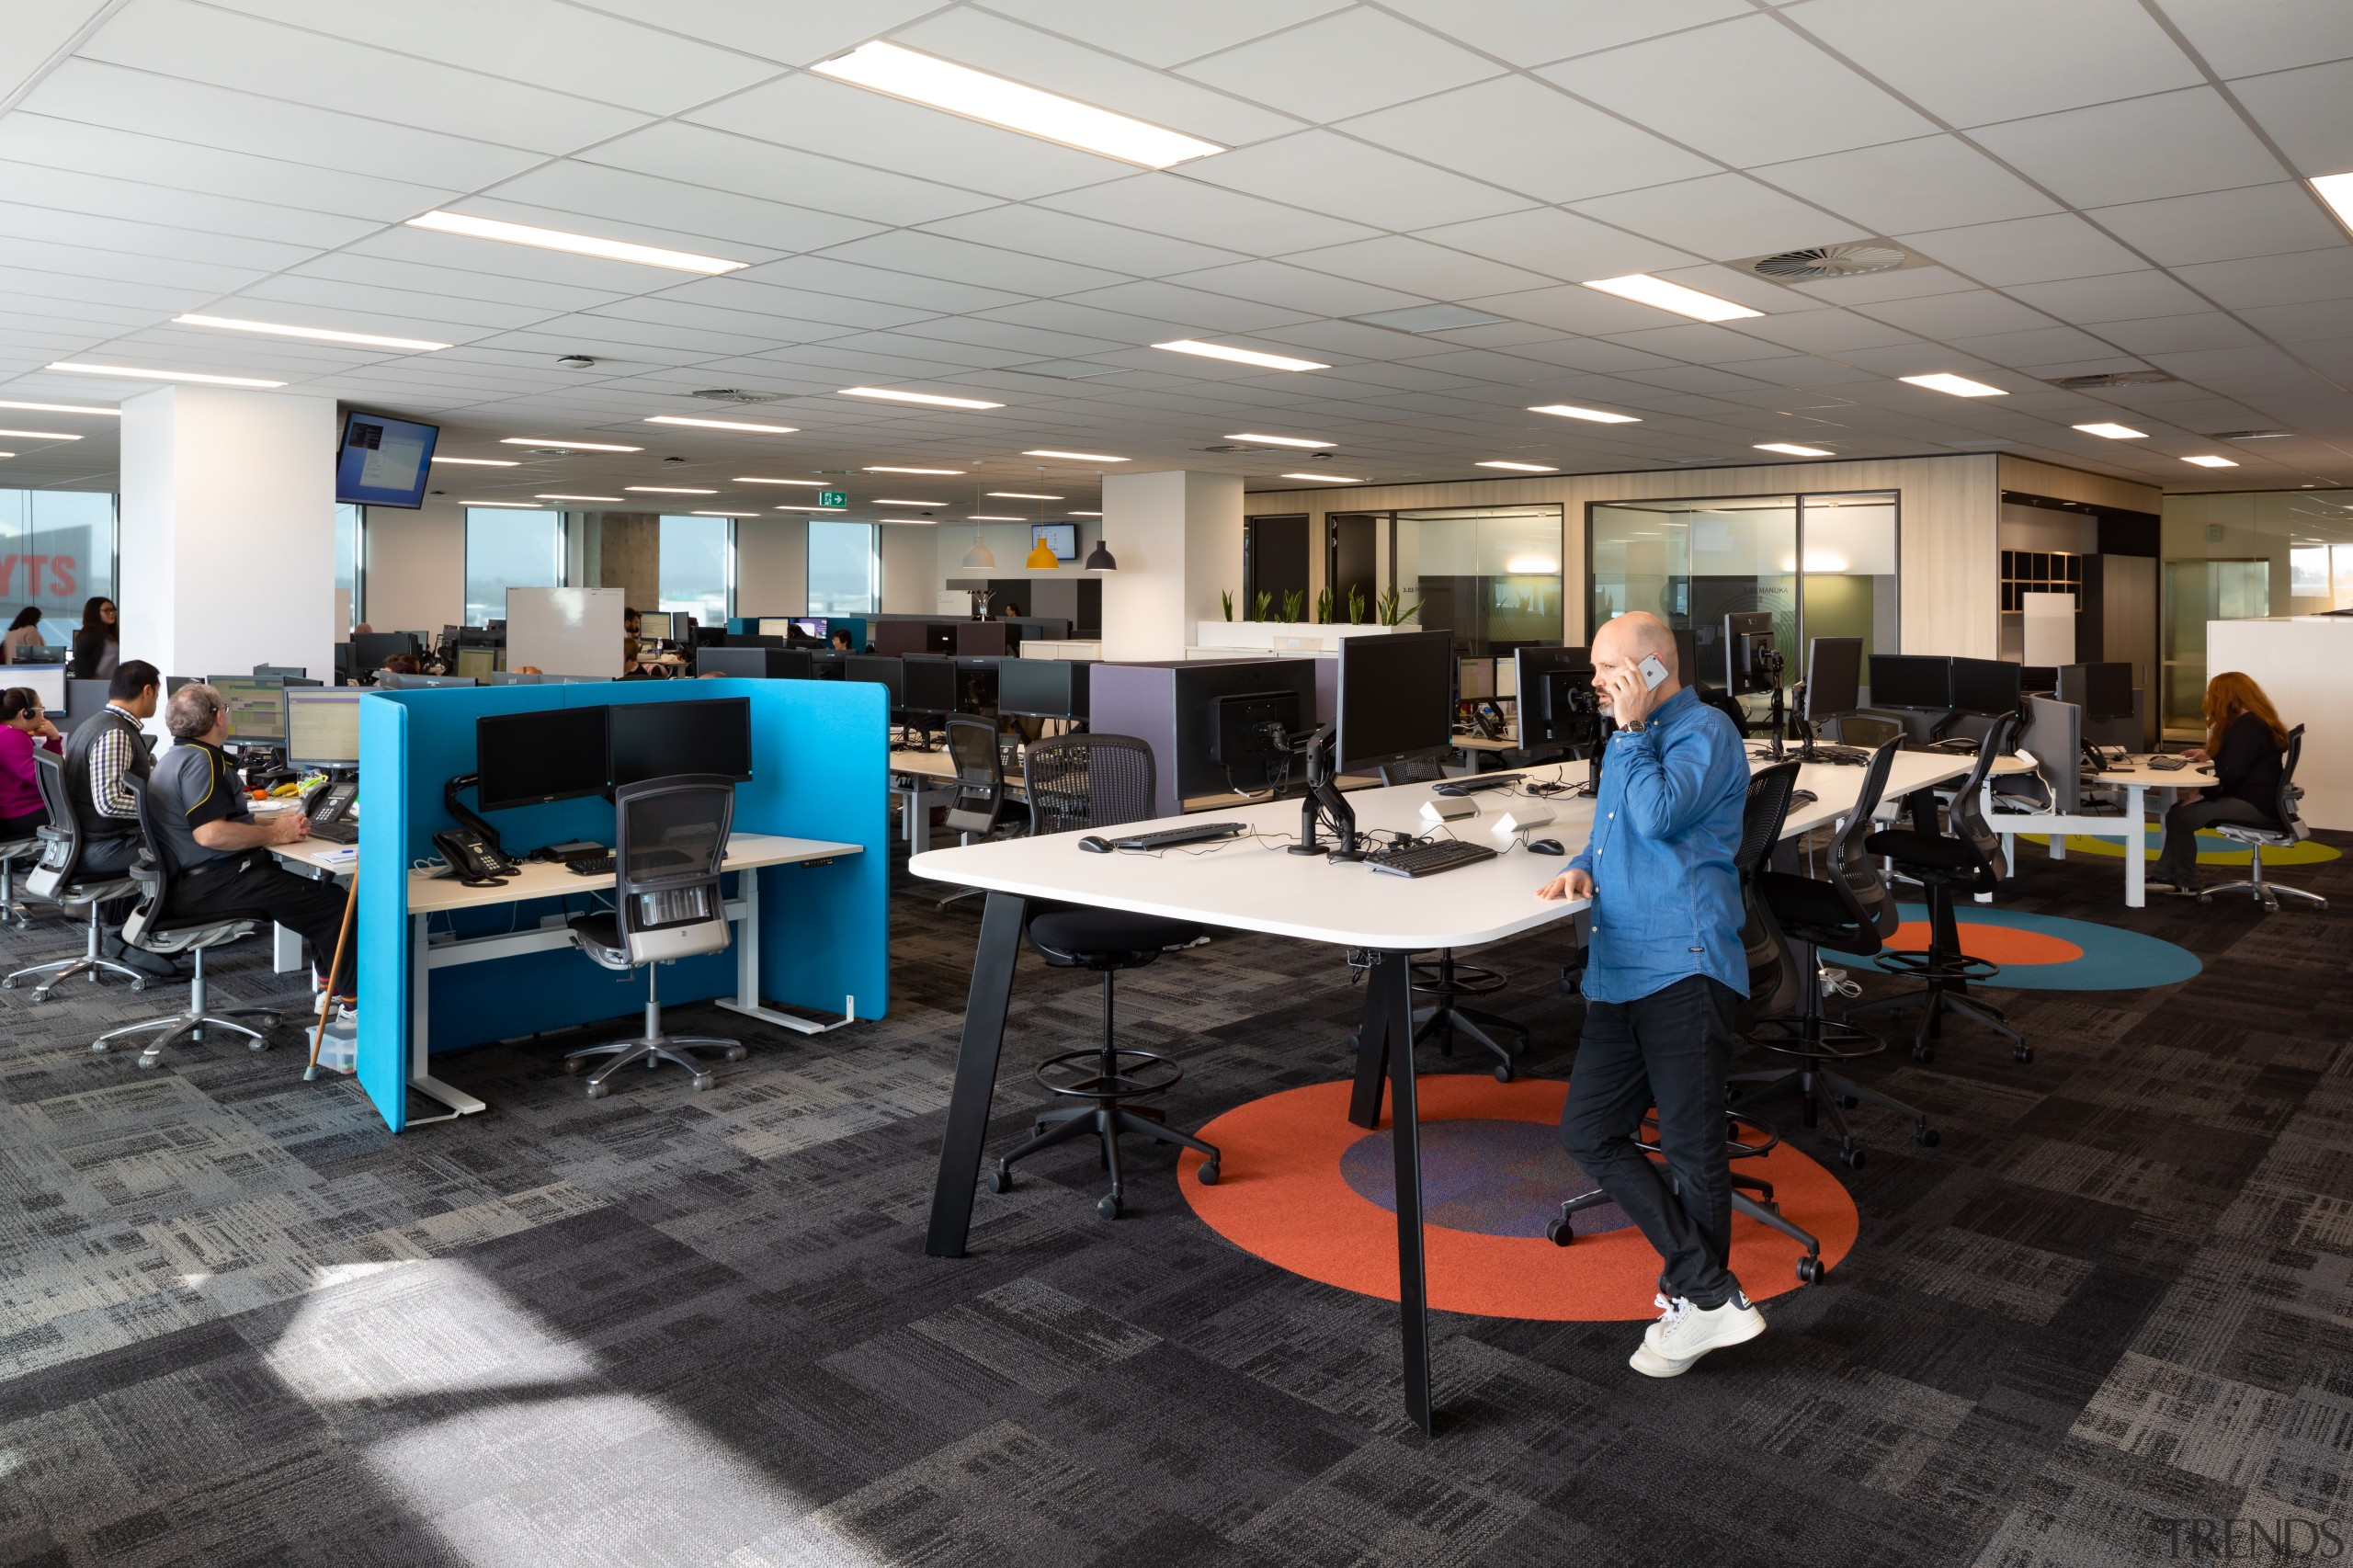 As part of the agile, unassigned work environment architecture, design, floor, flooring, furniture, interior design, office, gray, workstations, call centre, IAG Hub, no. 1 sylvia Park, desking